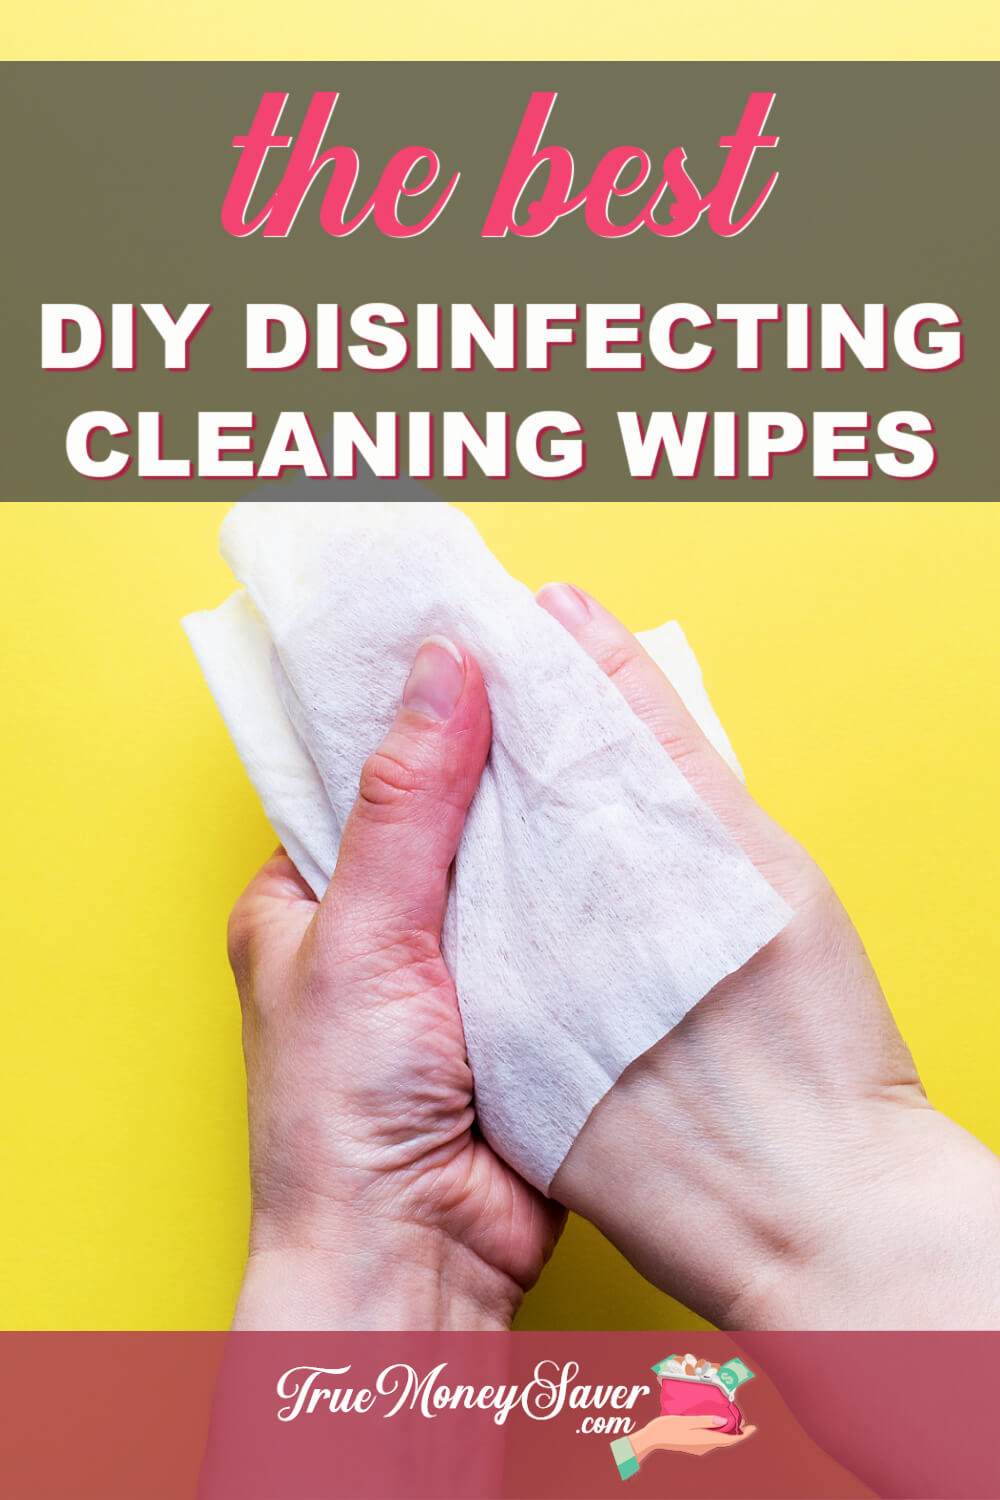 The Best Disinfecting DIY Cleaning Wipes You Need To Use